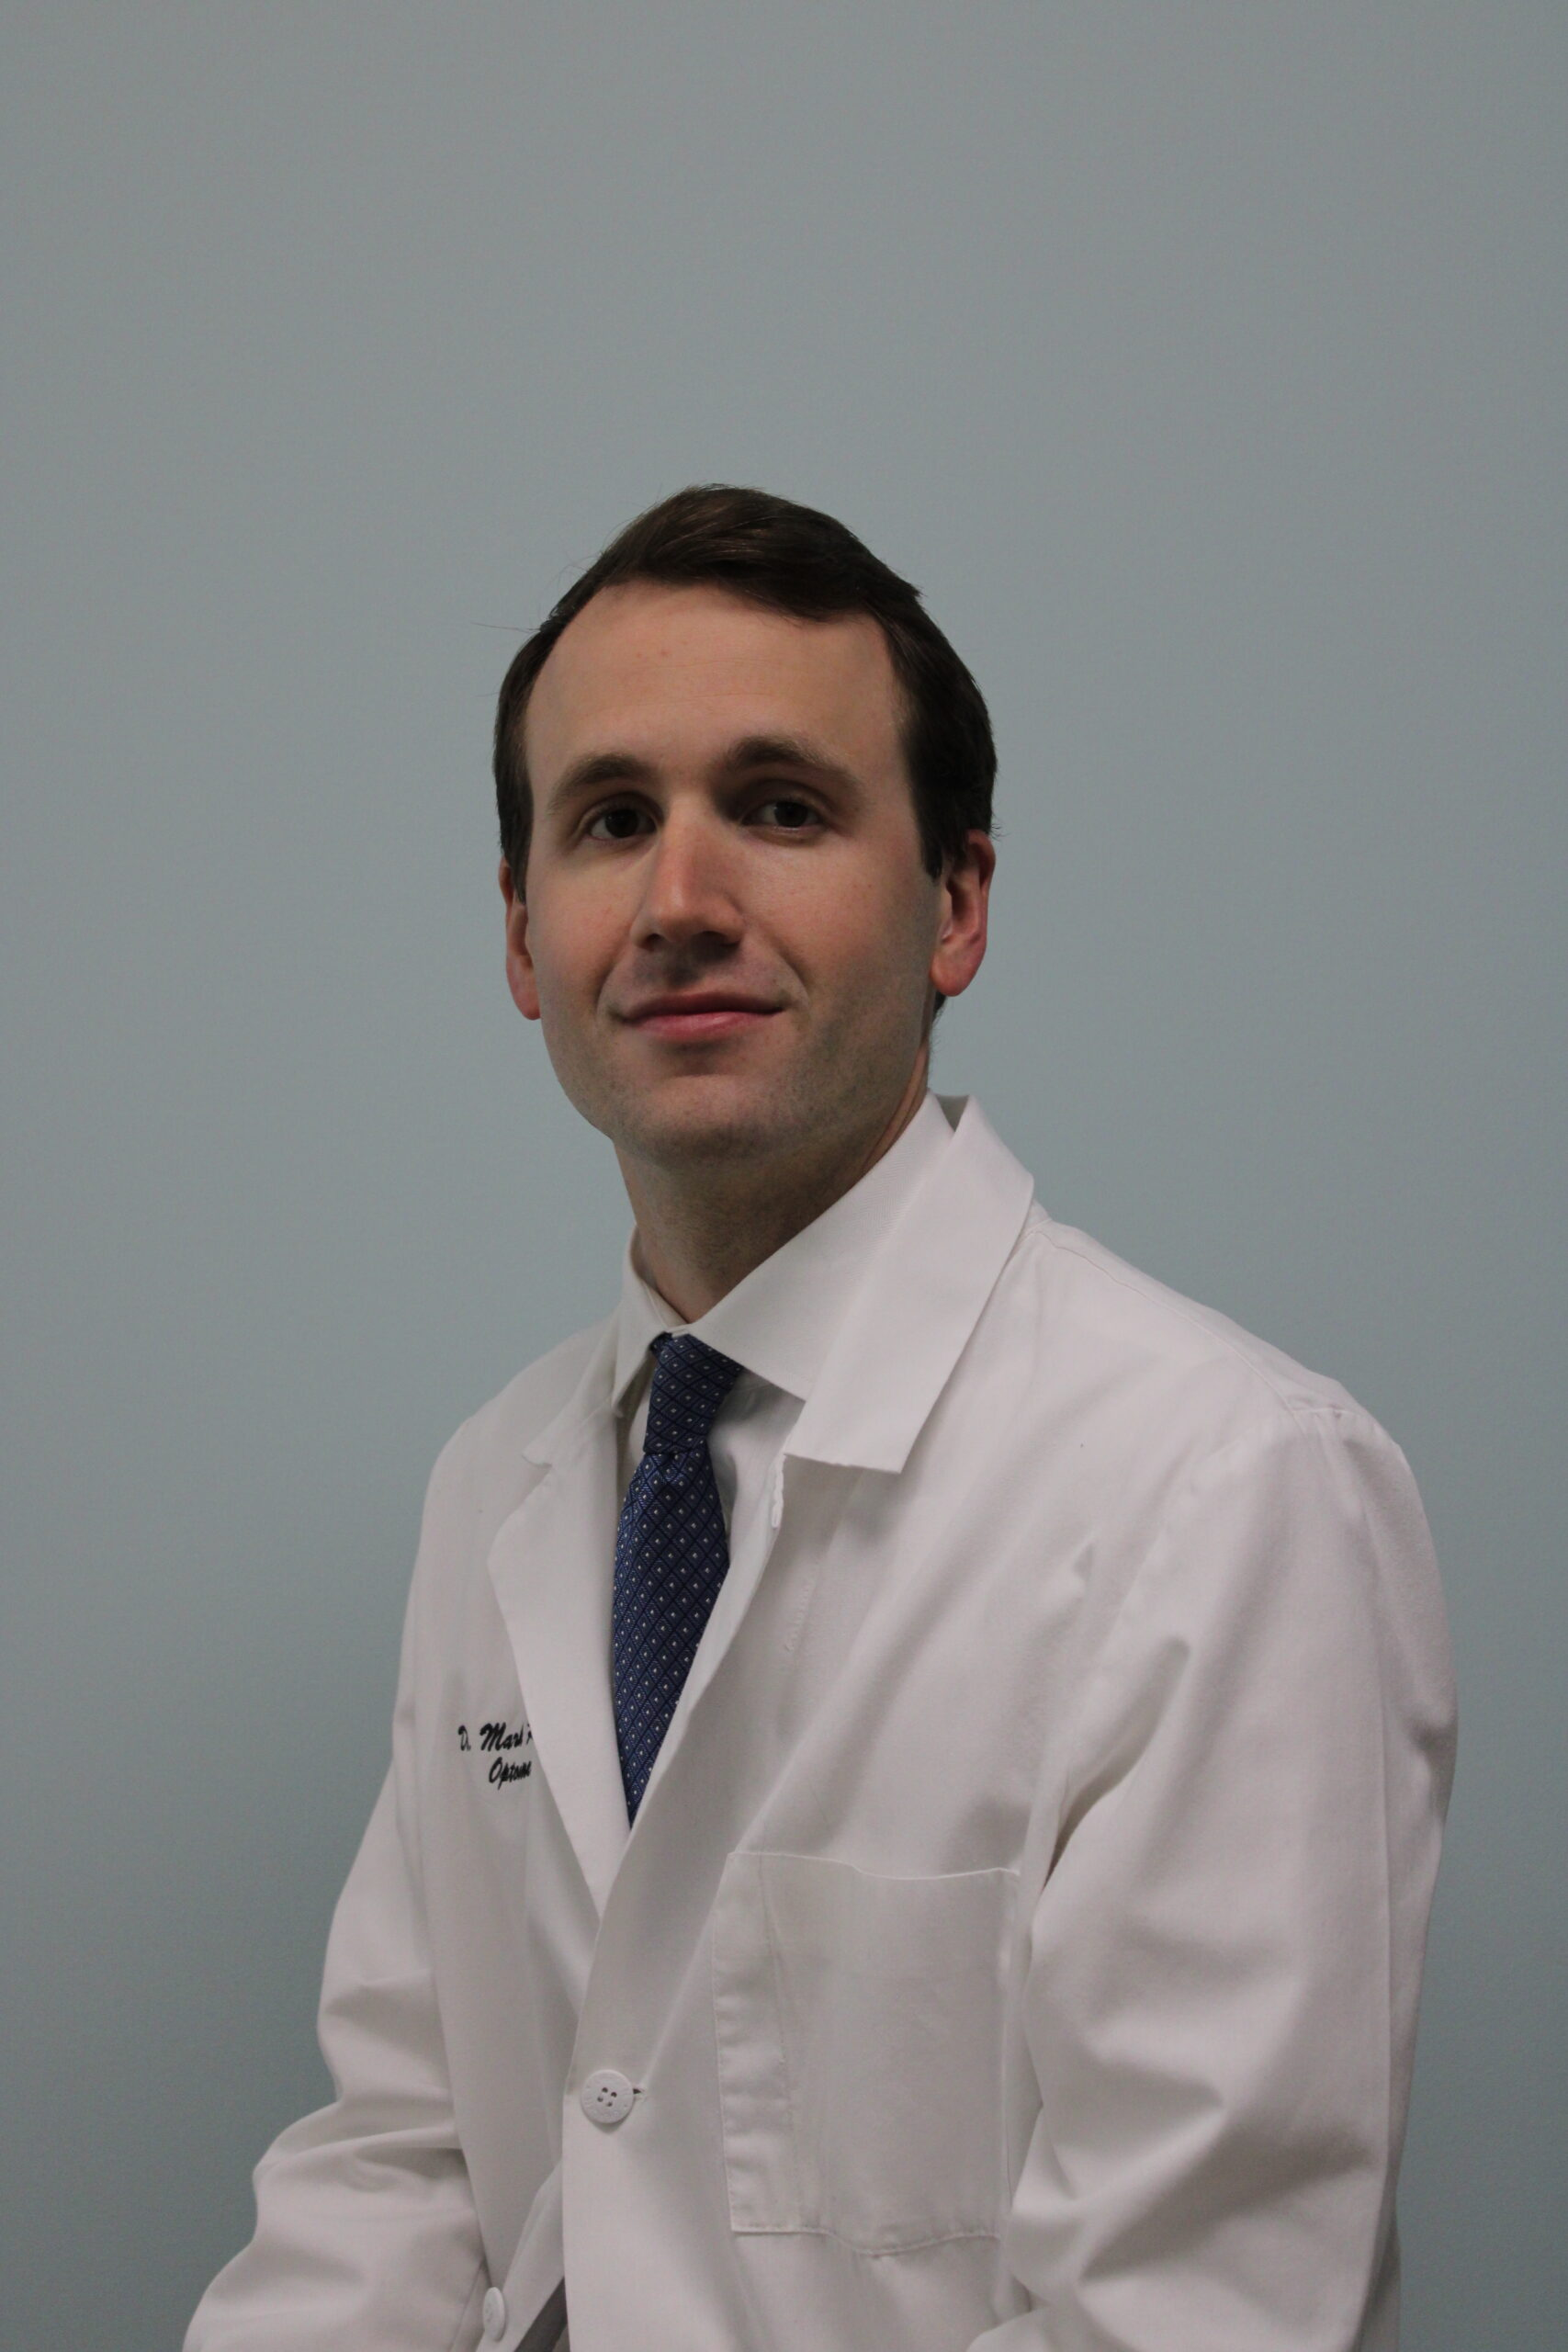 Dr. Mark Machen at Eagle View Eye Care